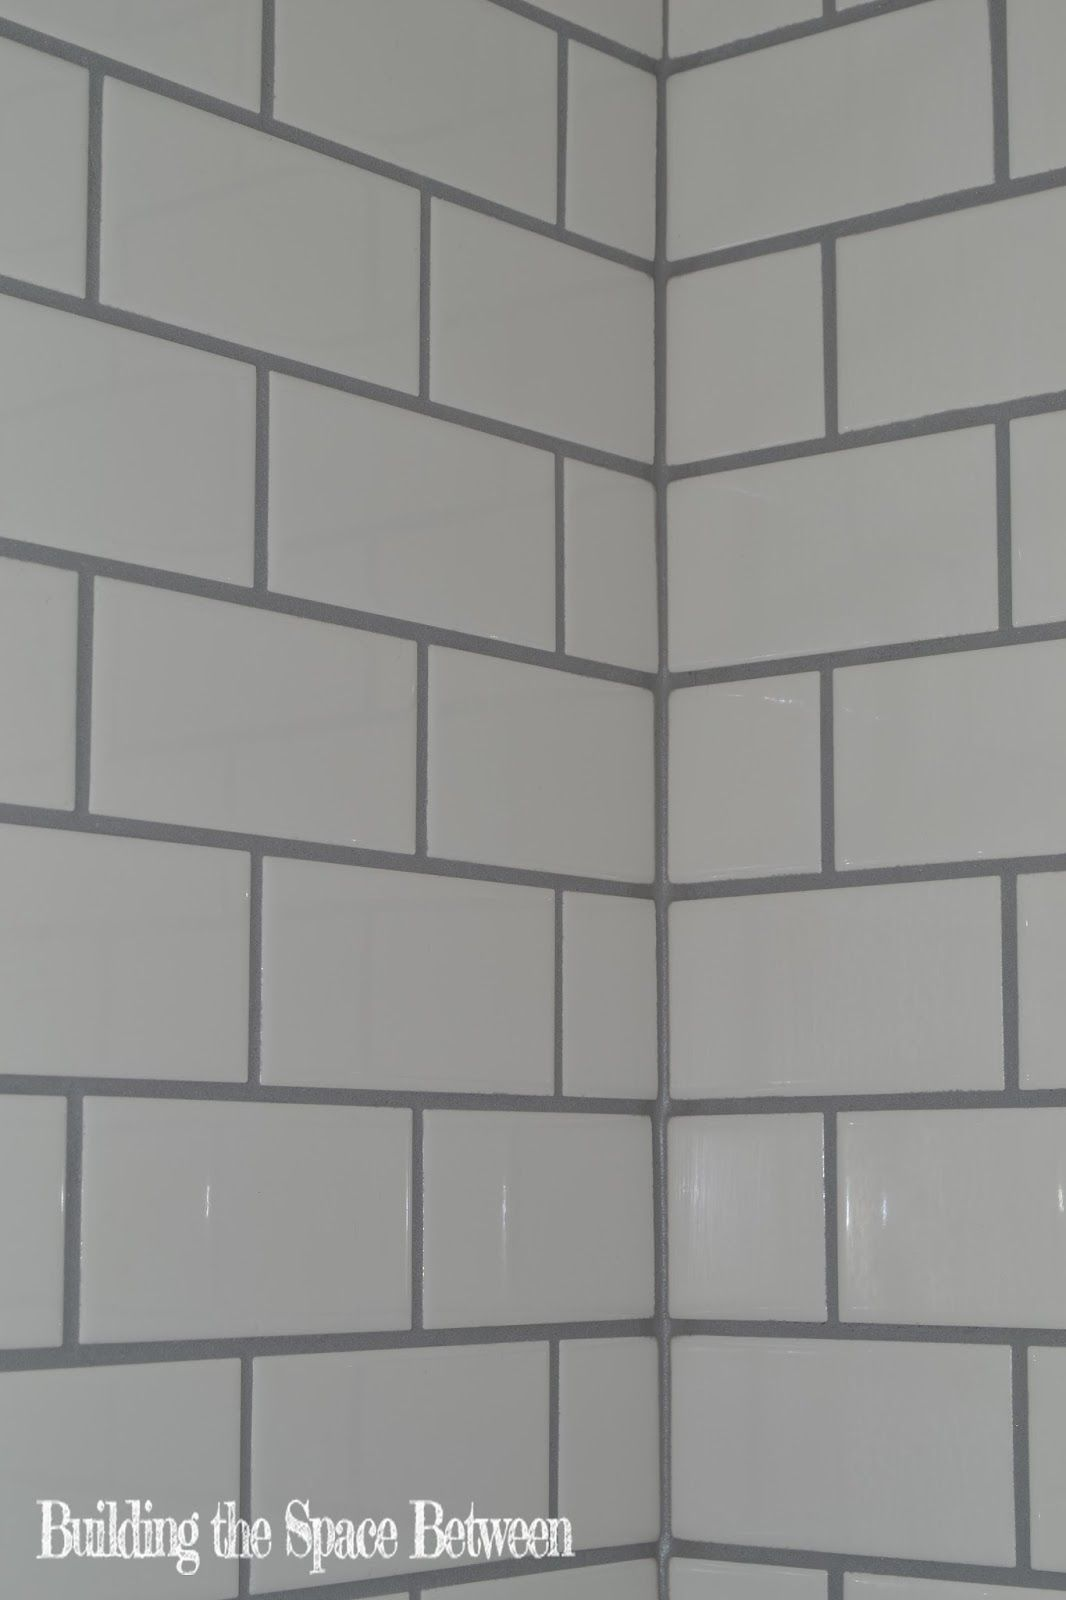 Building the space between the thick grey line bathroom